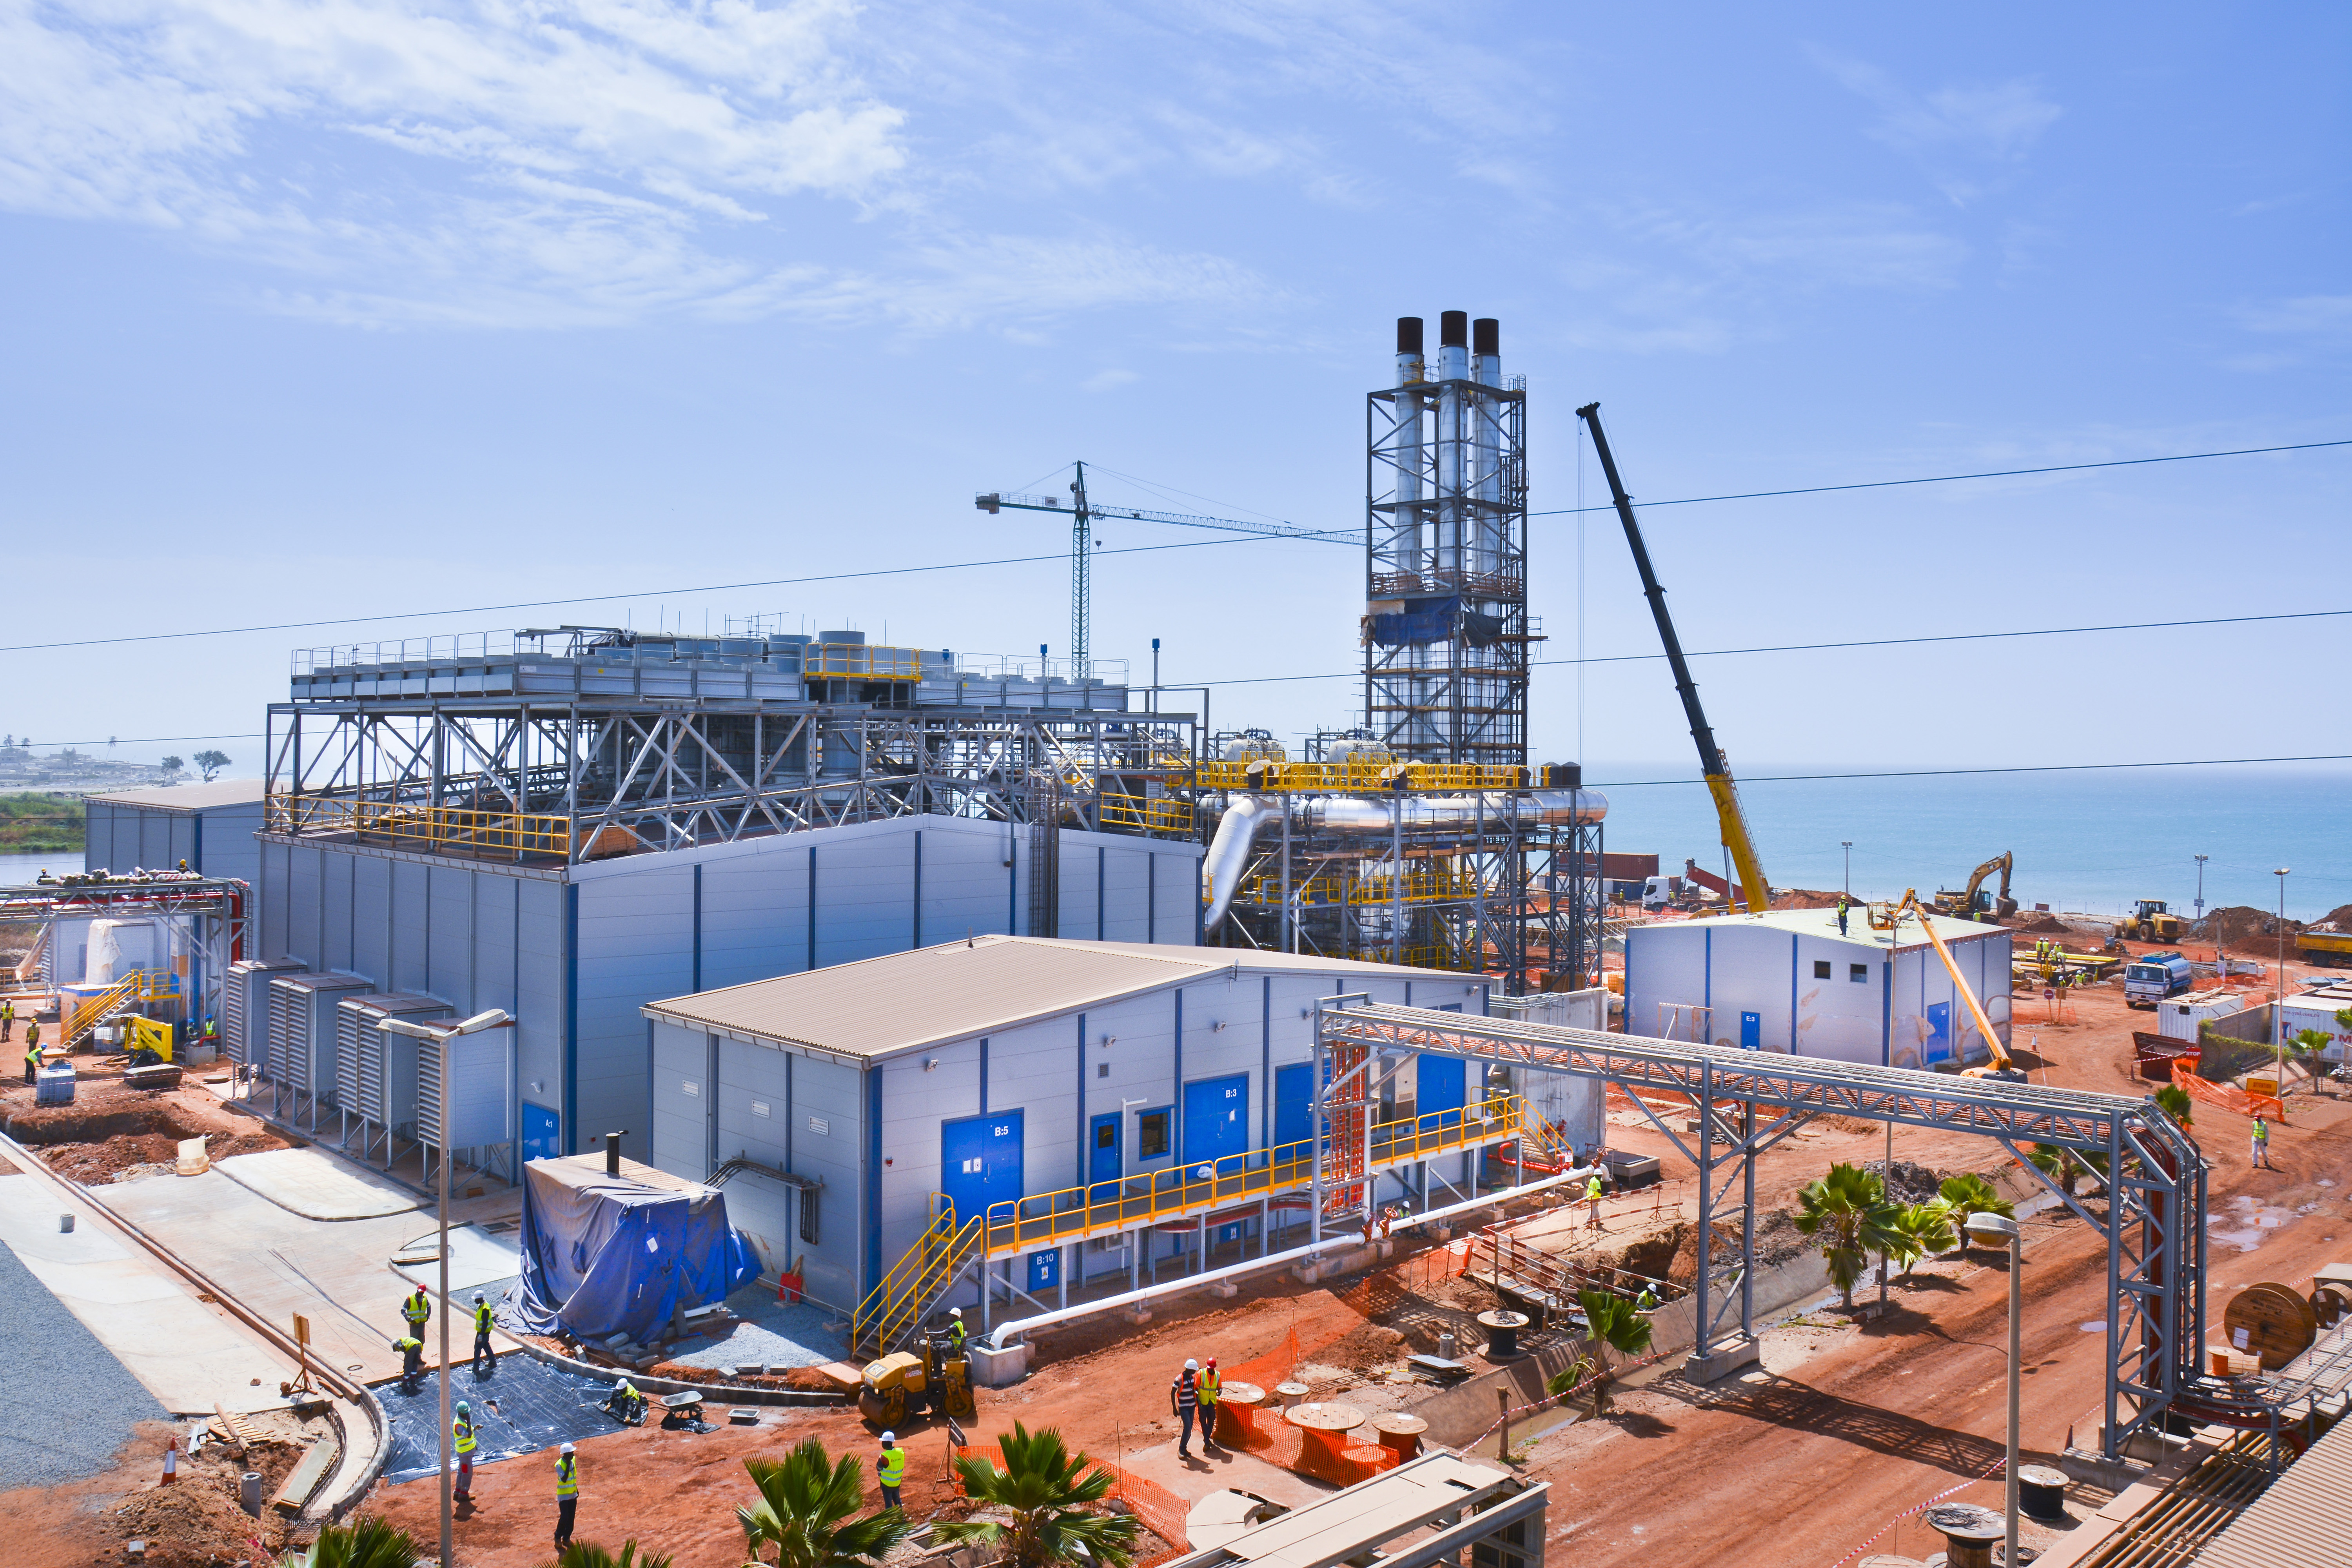 Wärtsilä Flexicycle power plant inaugurated in Senegal